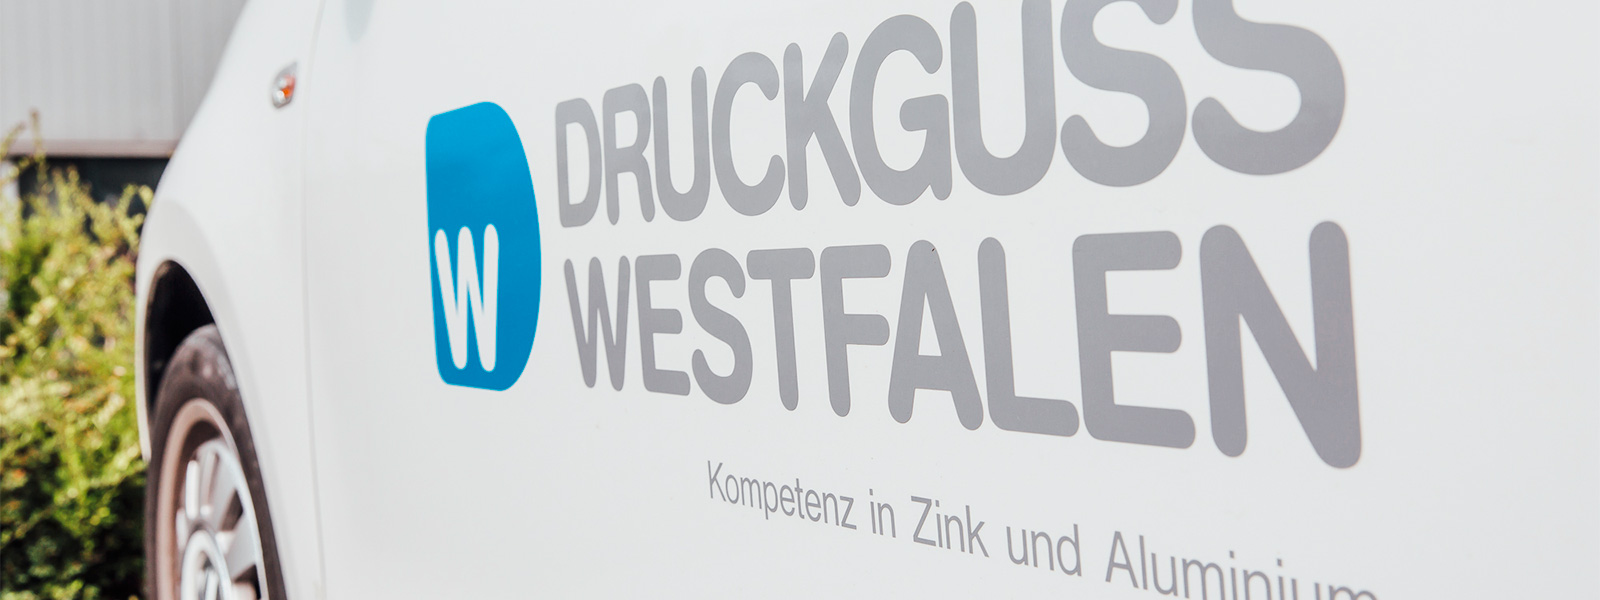 "Delivery vehicle with Druckguss Westfalen logo and slogan, ""Kompetenz in Zink und Aluminium"" (""Expertise in zinc and aluminium"")"